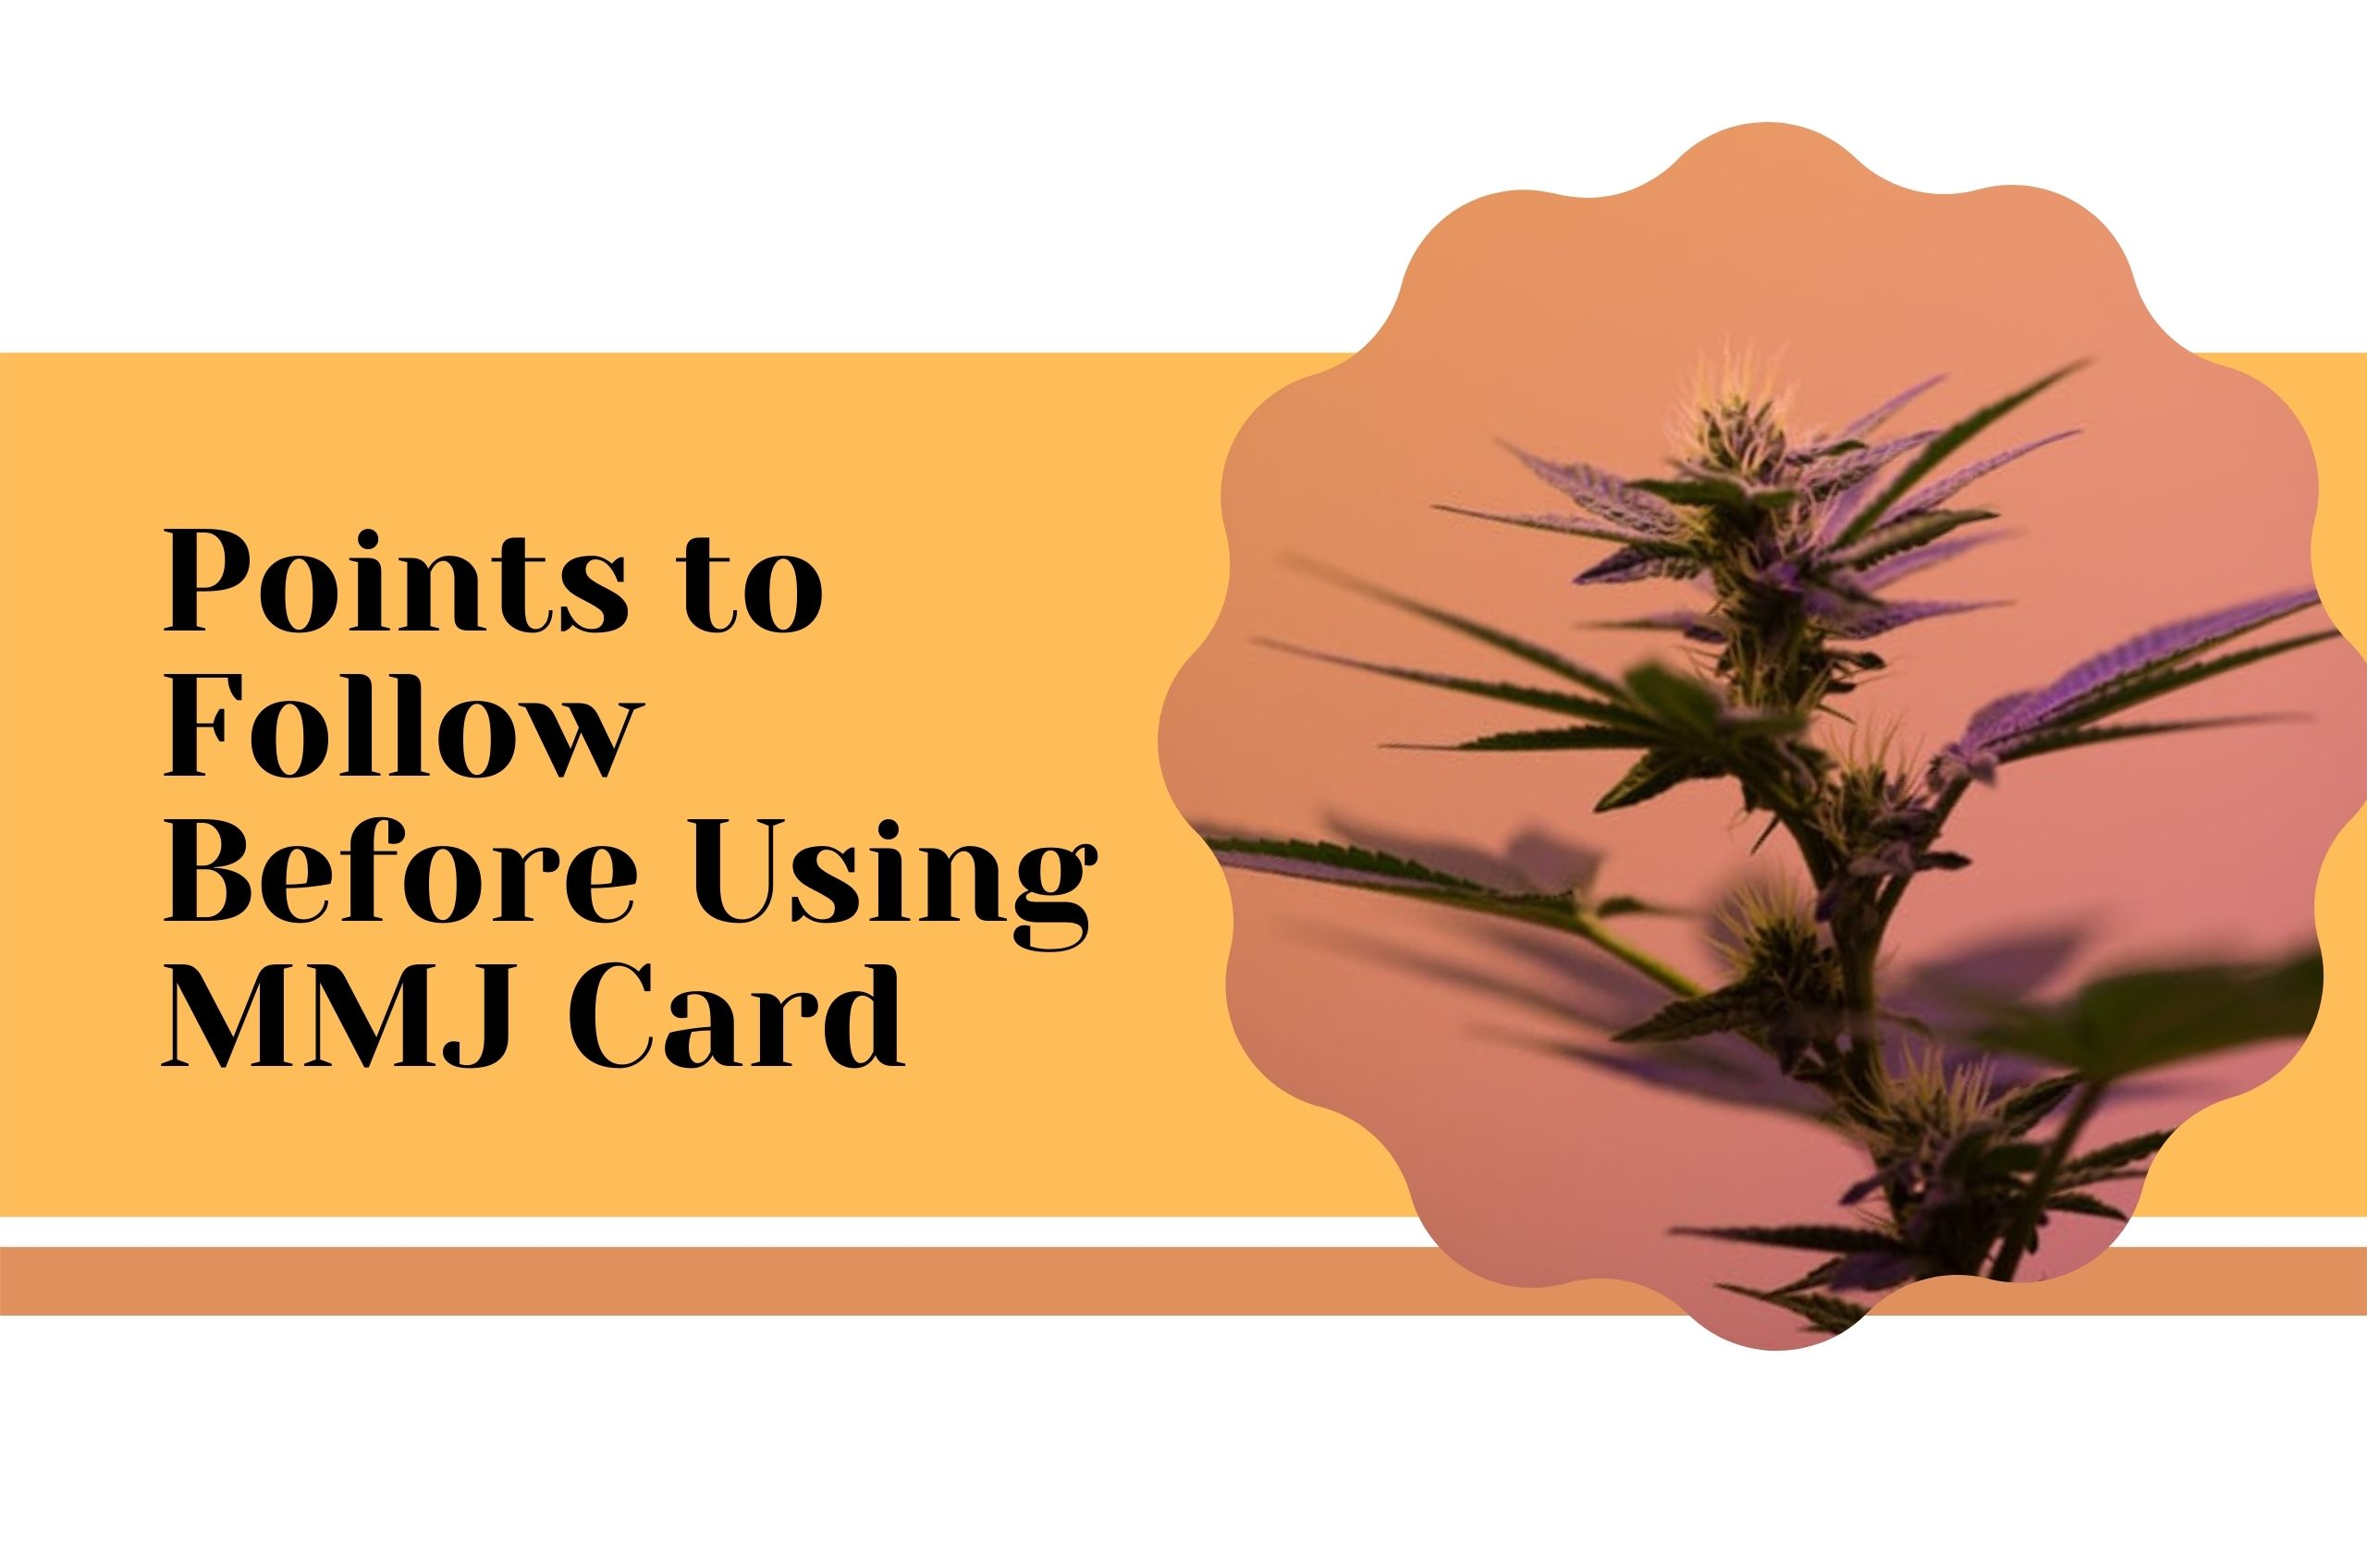 Points to Remember Before Using an MMJ Card